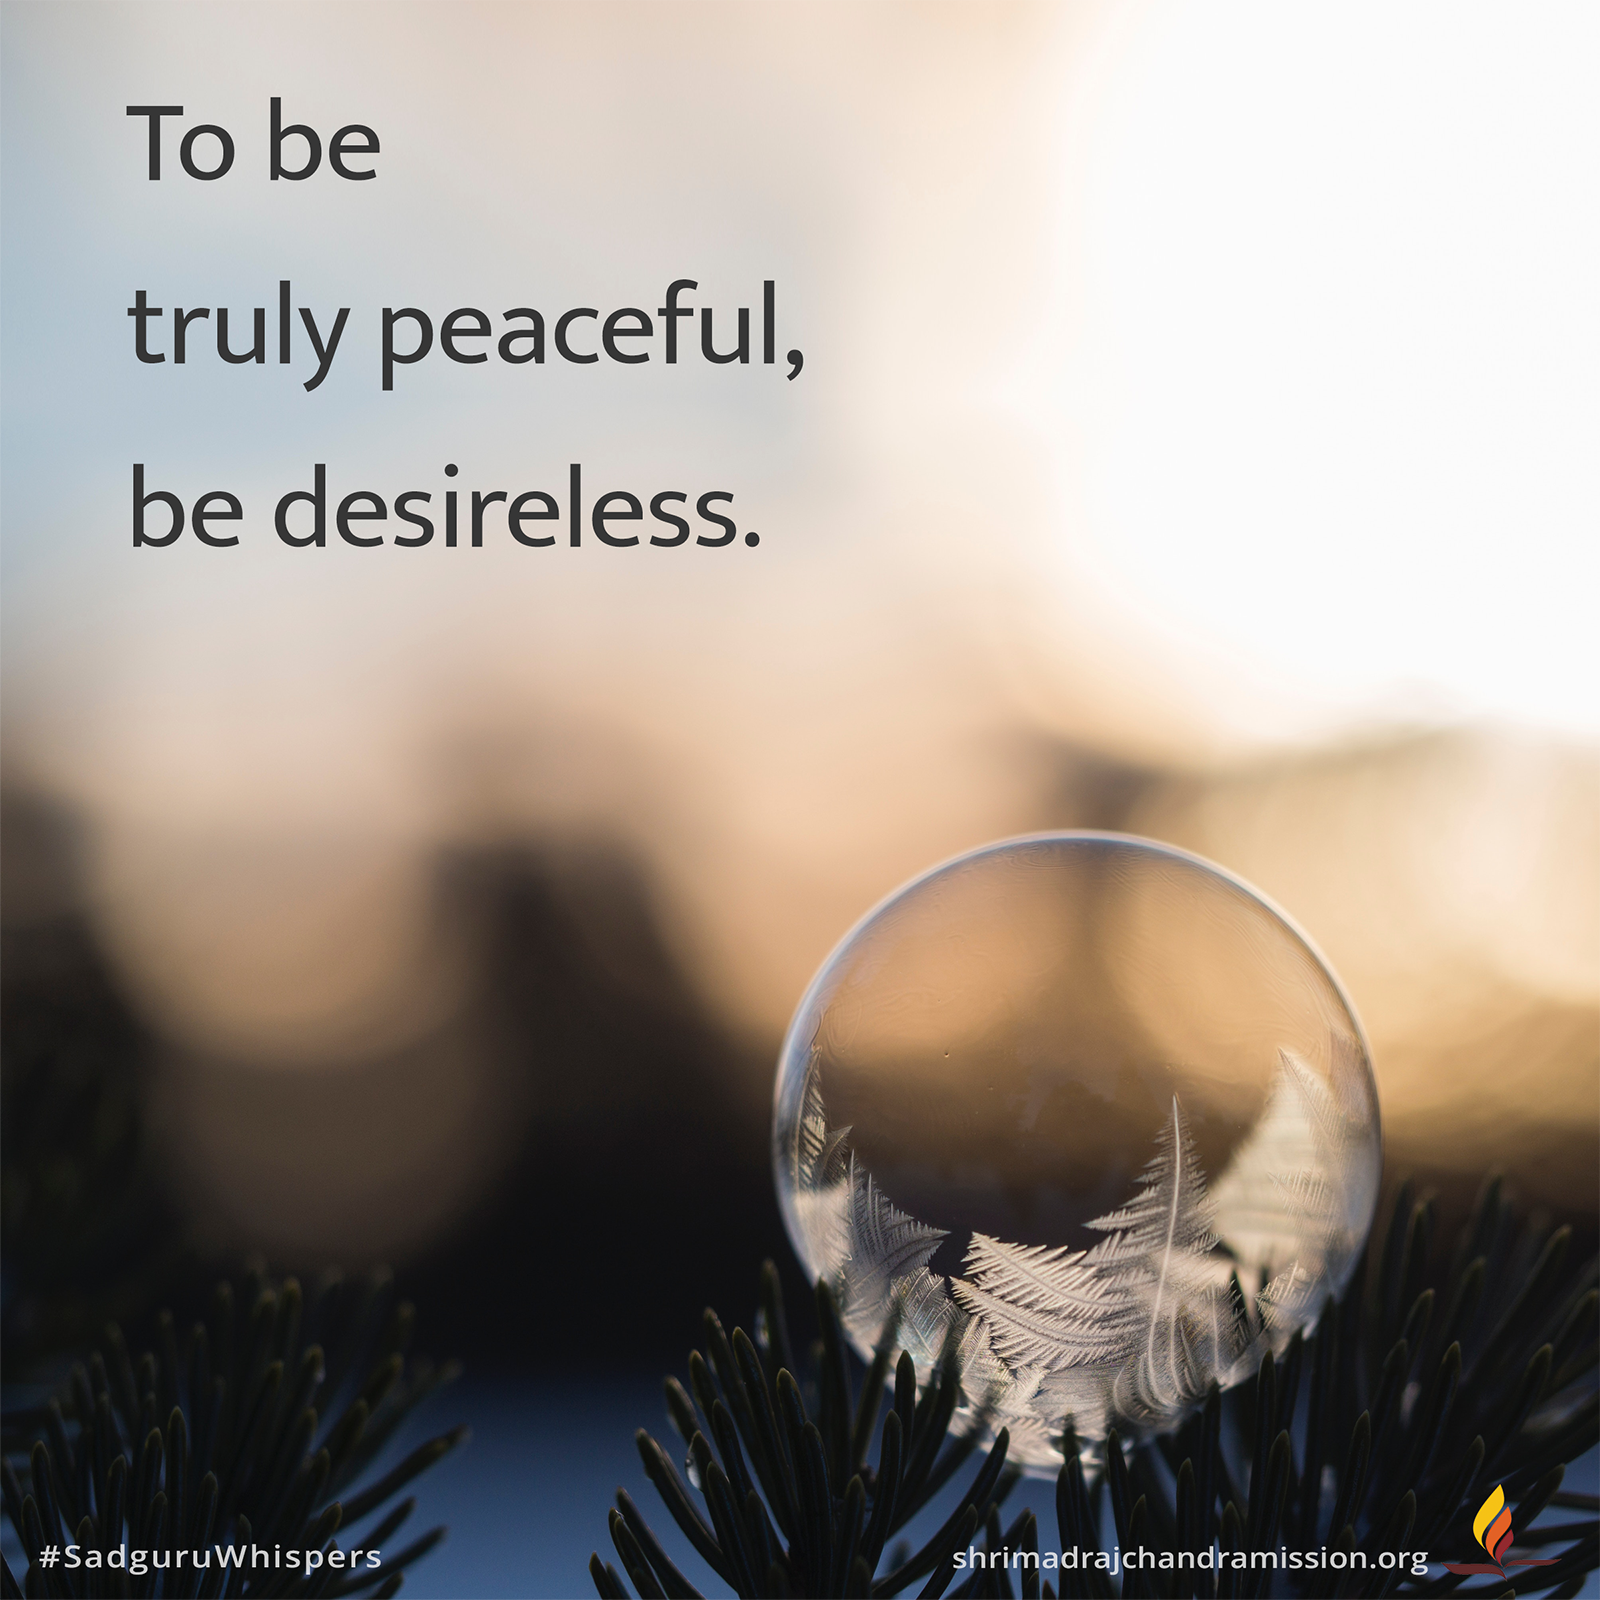 To Be Truly Peaceful Be Desireless Sadguruwhispers Quotes Qotd Peaceful Peace Desireless Innerh Savvy Quotes Run Away Quotes Daily Motivational Quotes